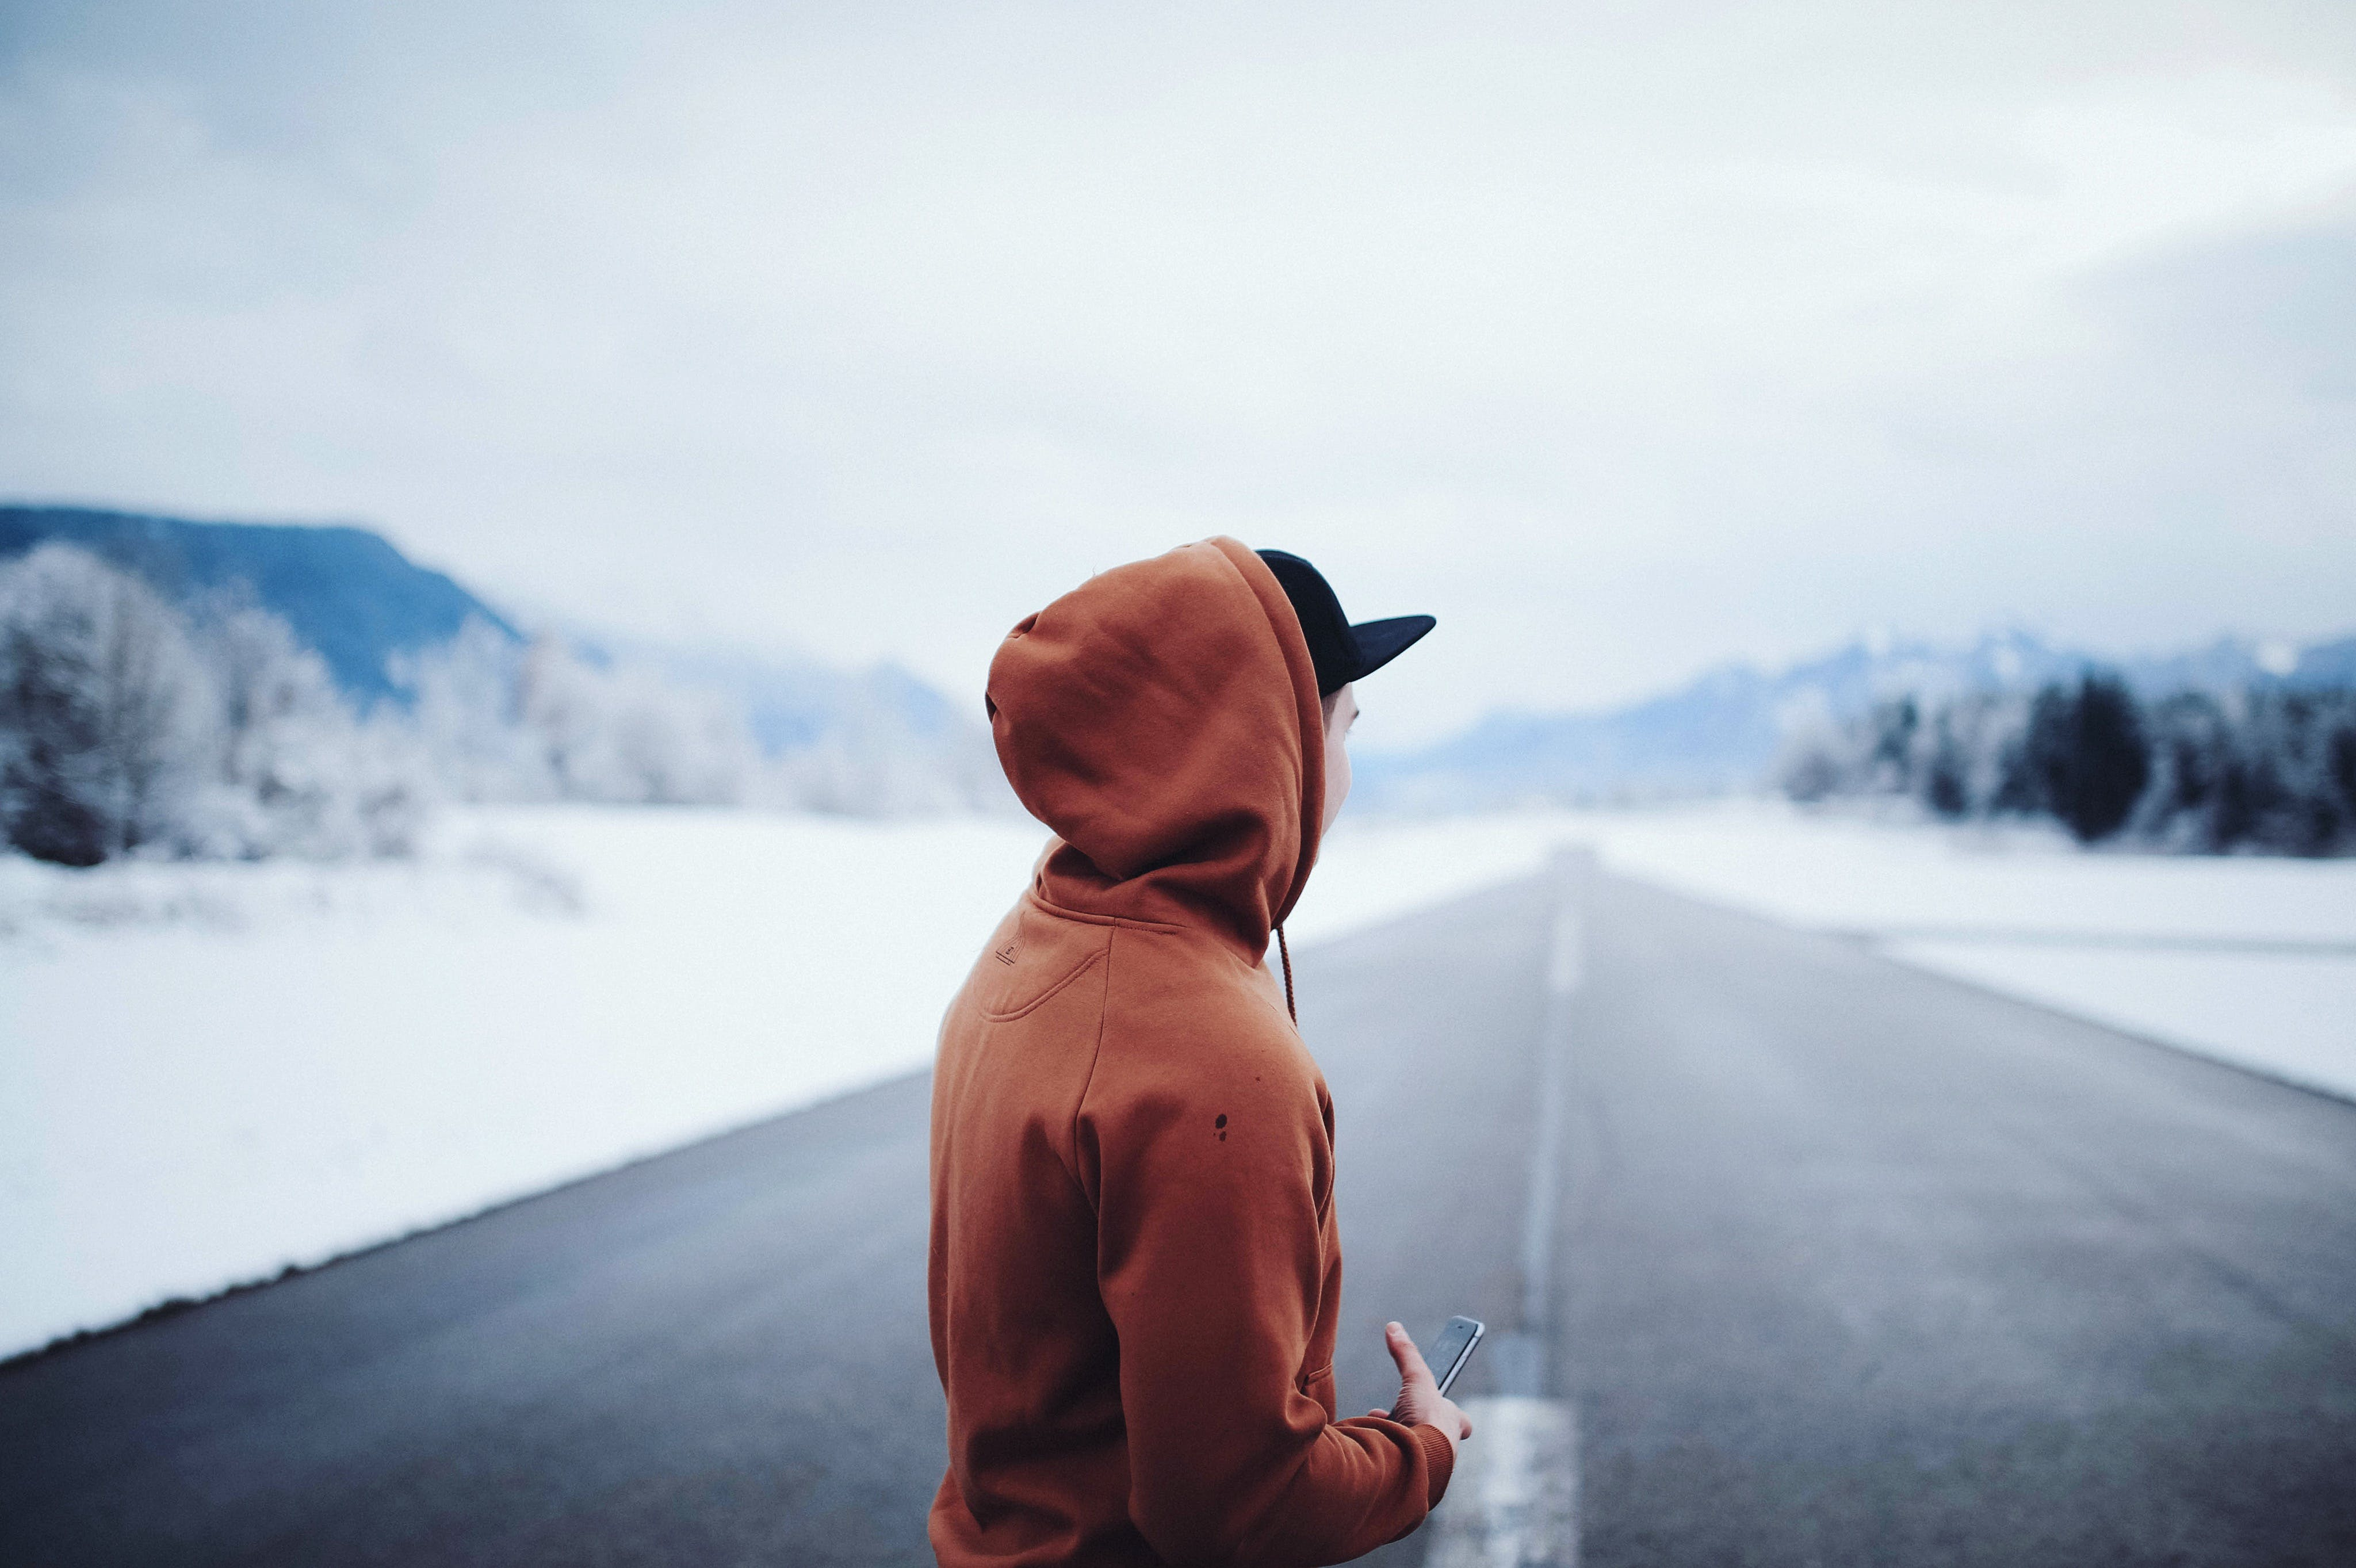 Man Wearing Brown Hoodie in Road